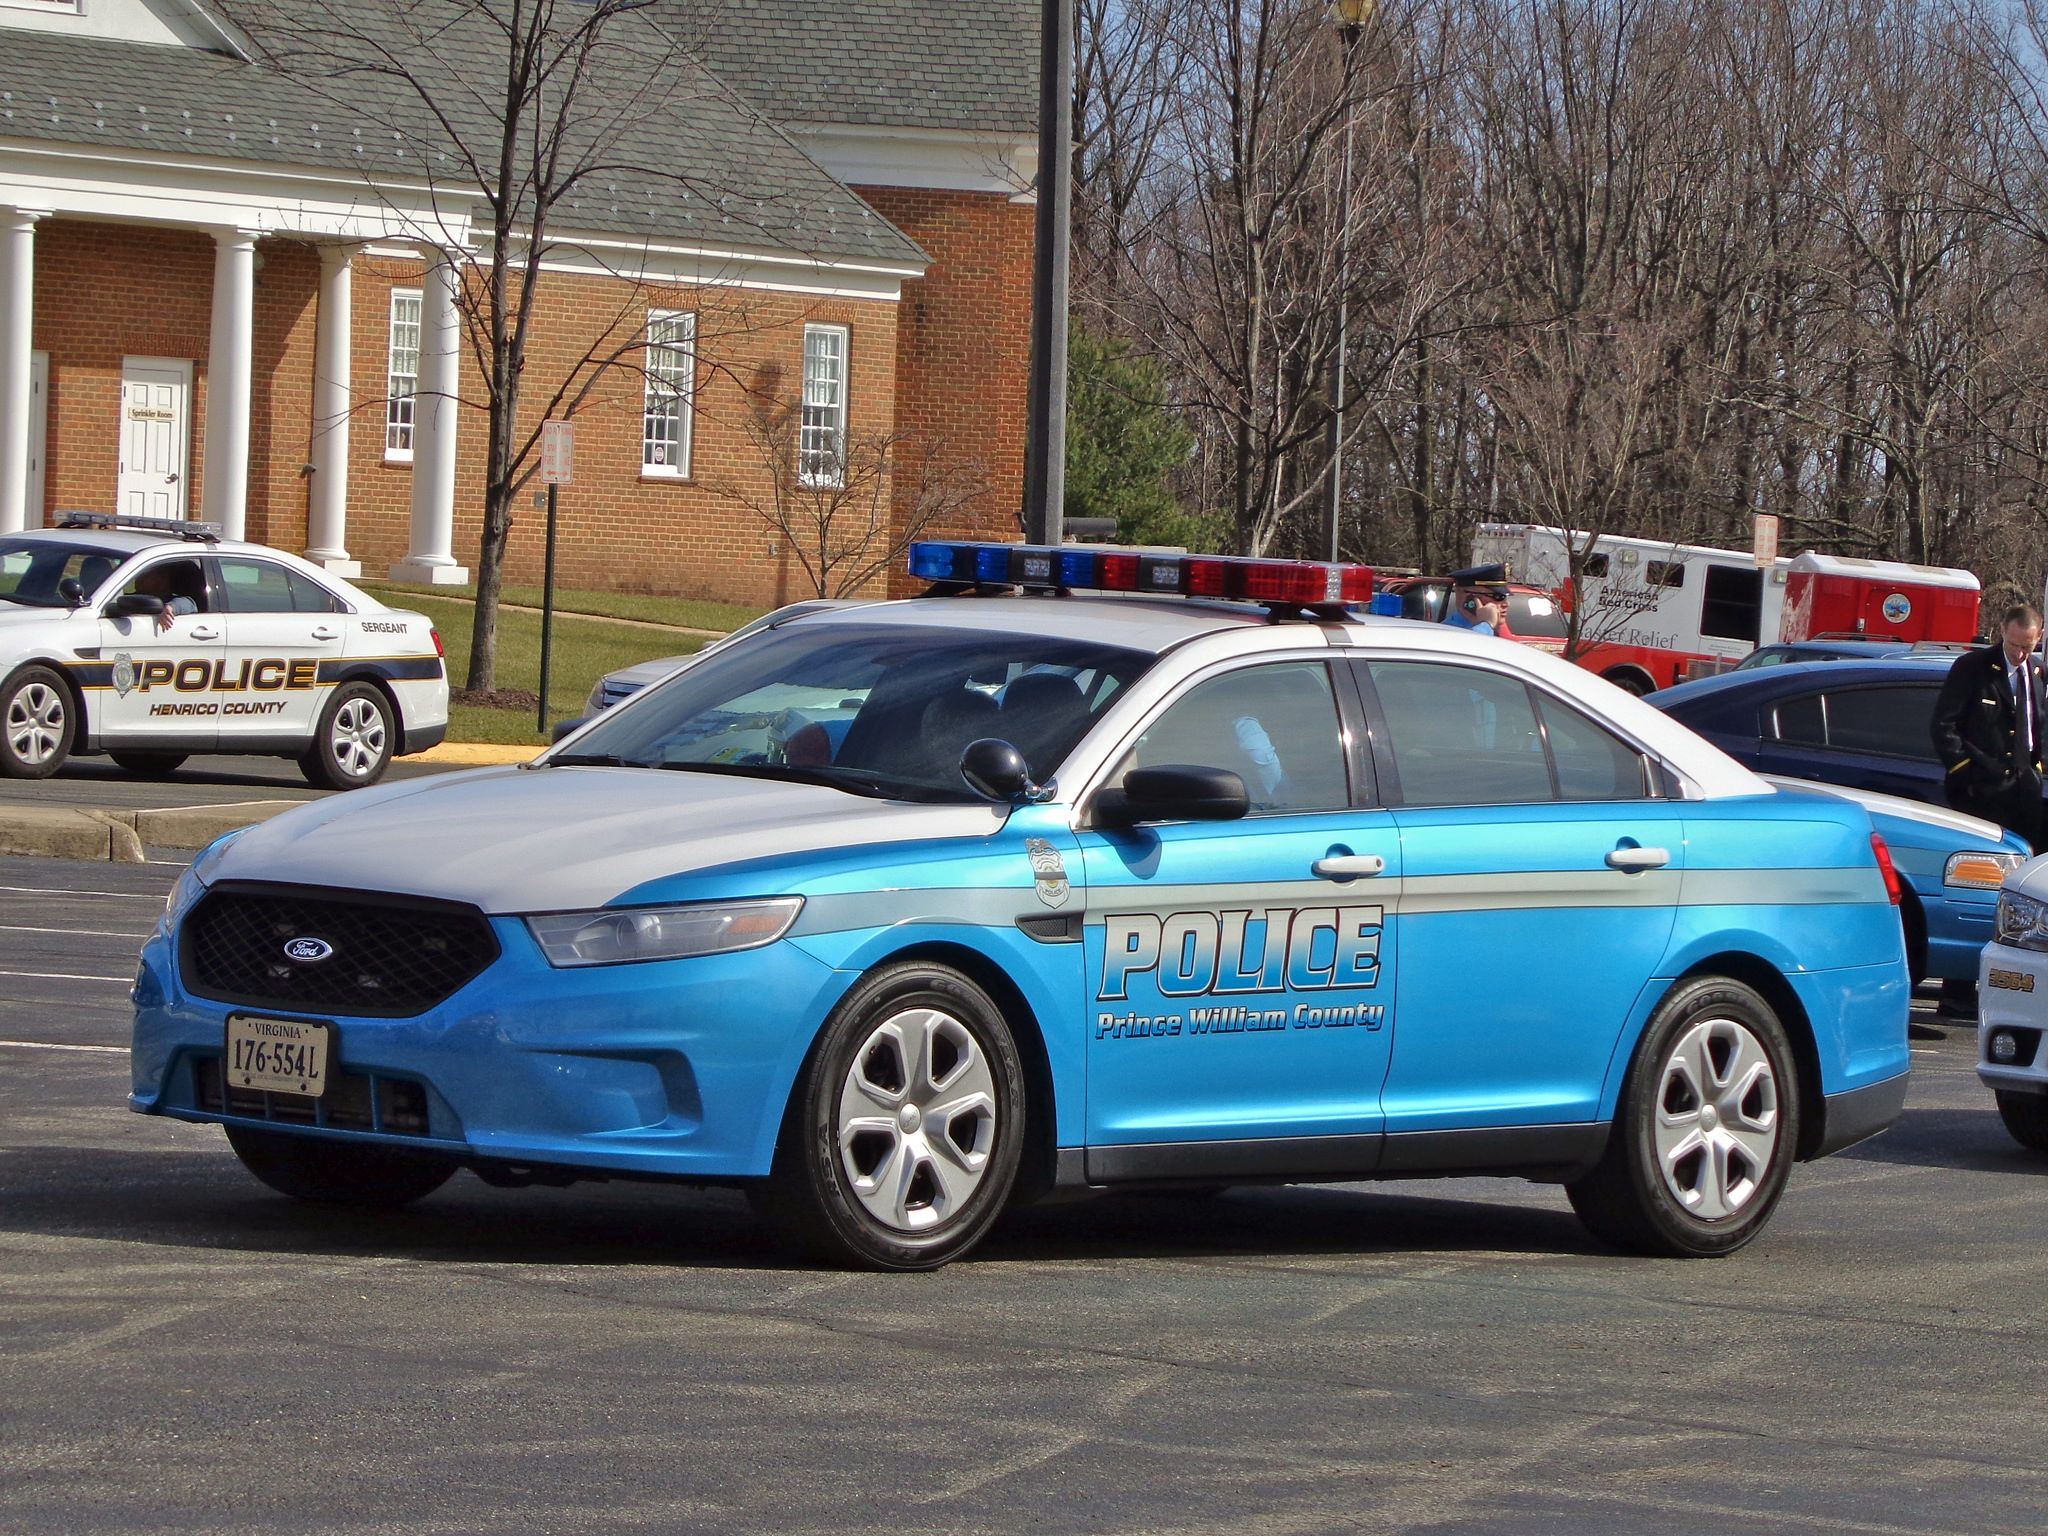 Prince William County Pd Virginia Us Police Car Police Cars Prince William County